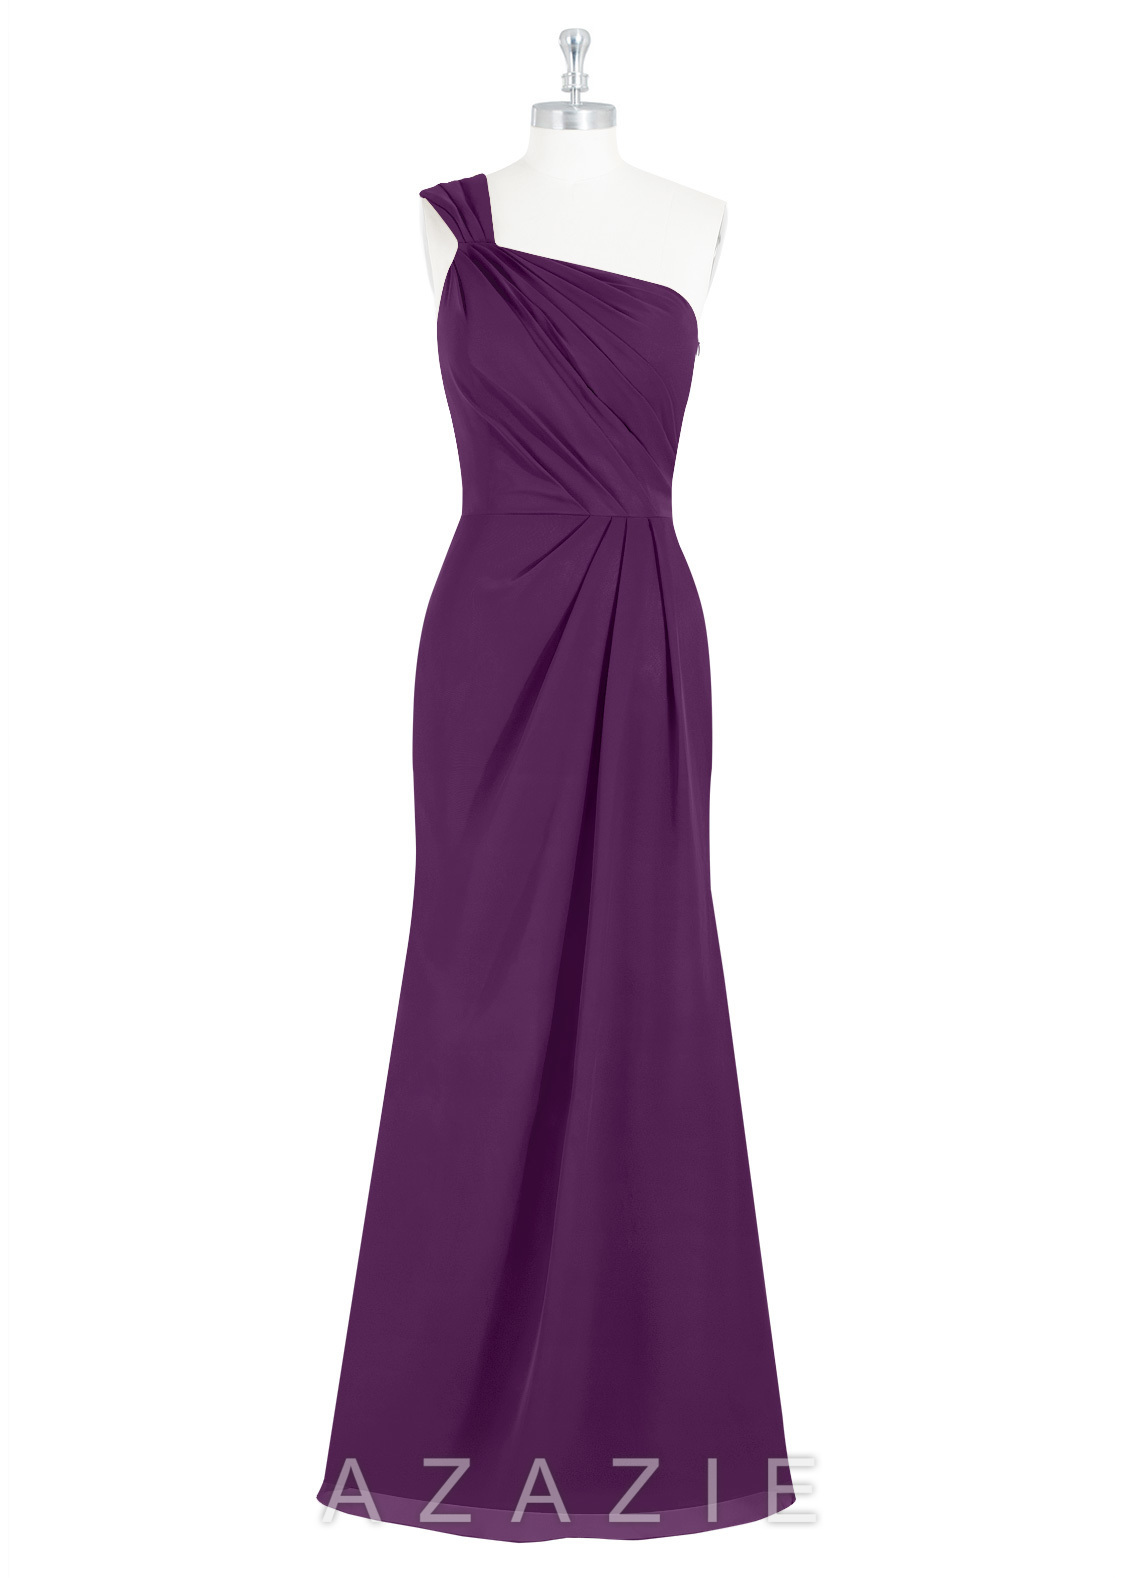 Azazie Carissa Bridesmaid Dress | Azazie